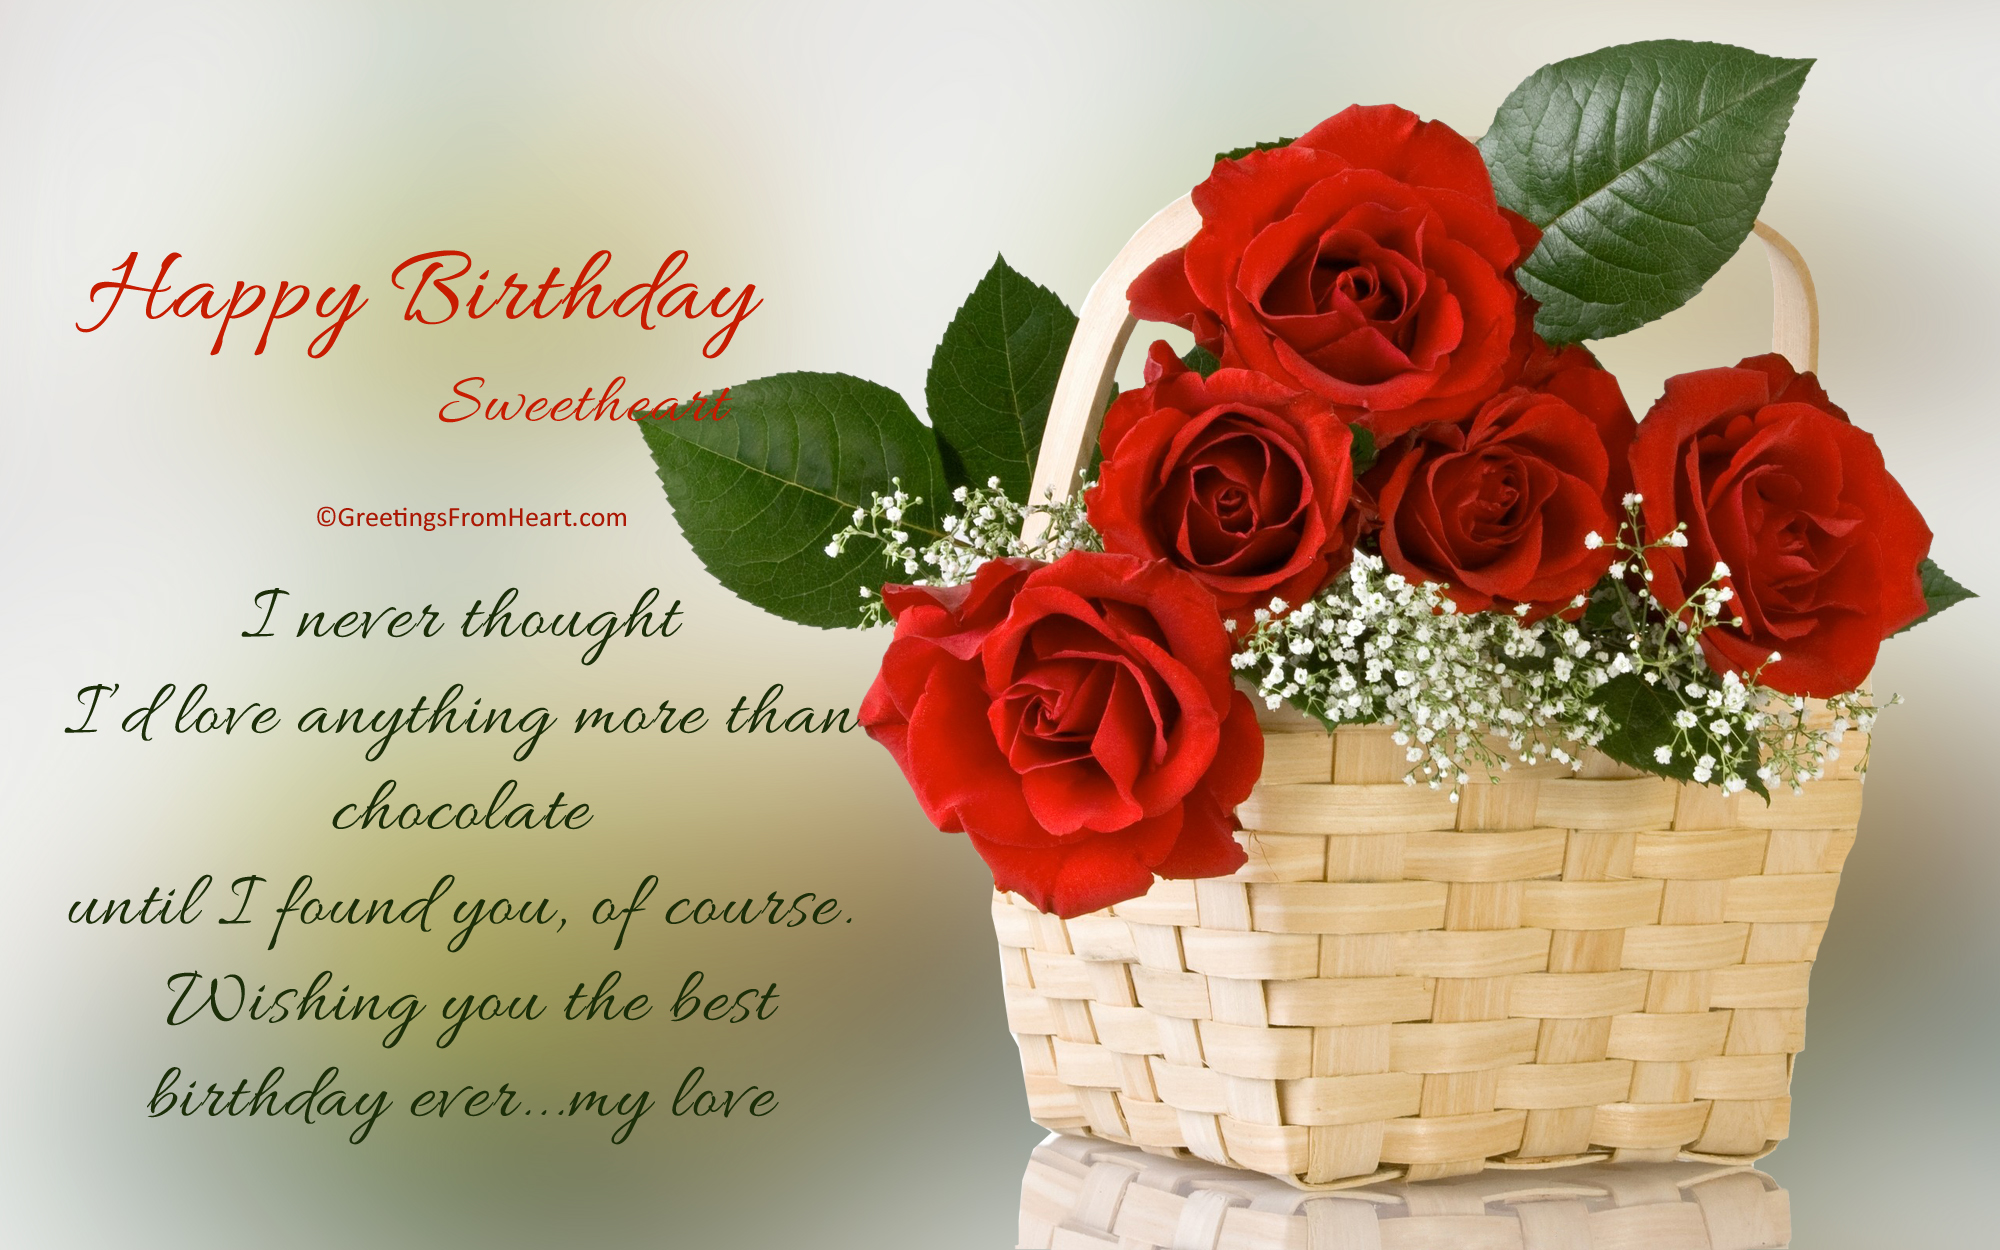 birthday message to a loved one ; happy-birthday-greetings-for-lover-7